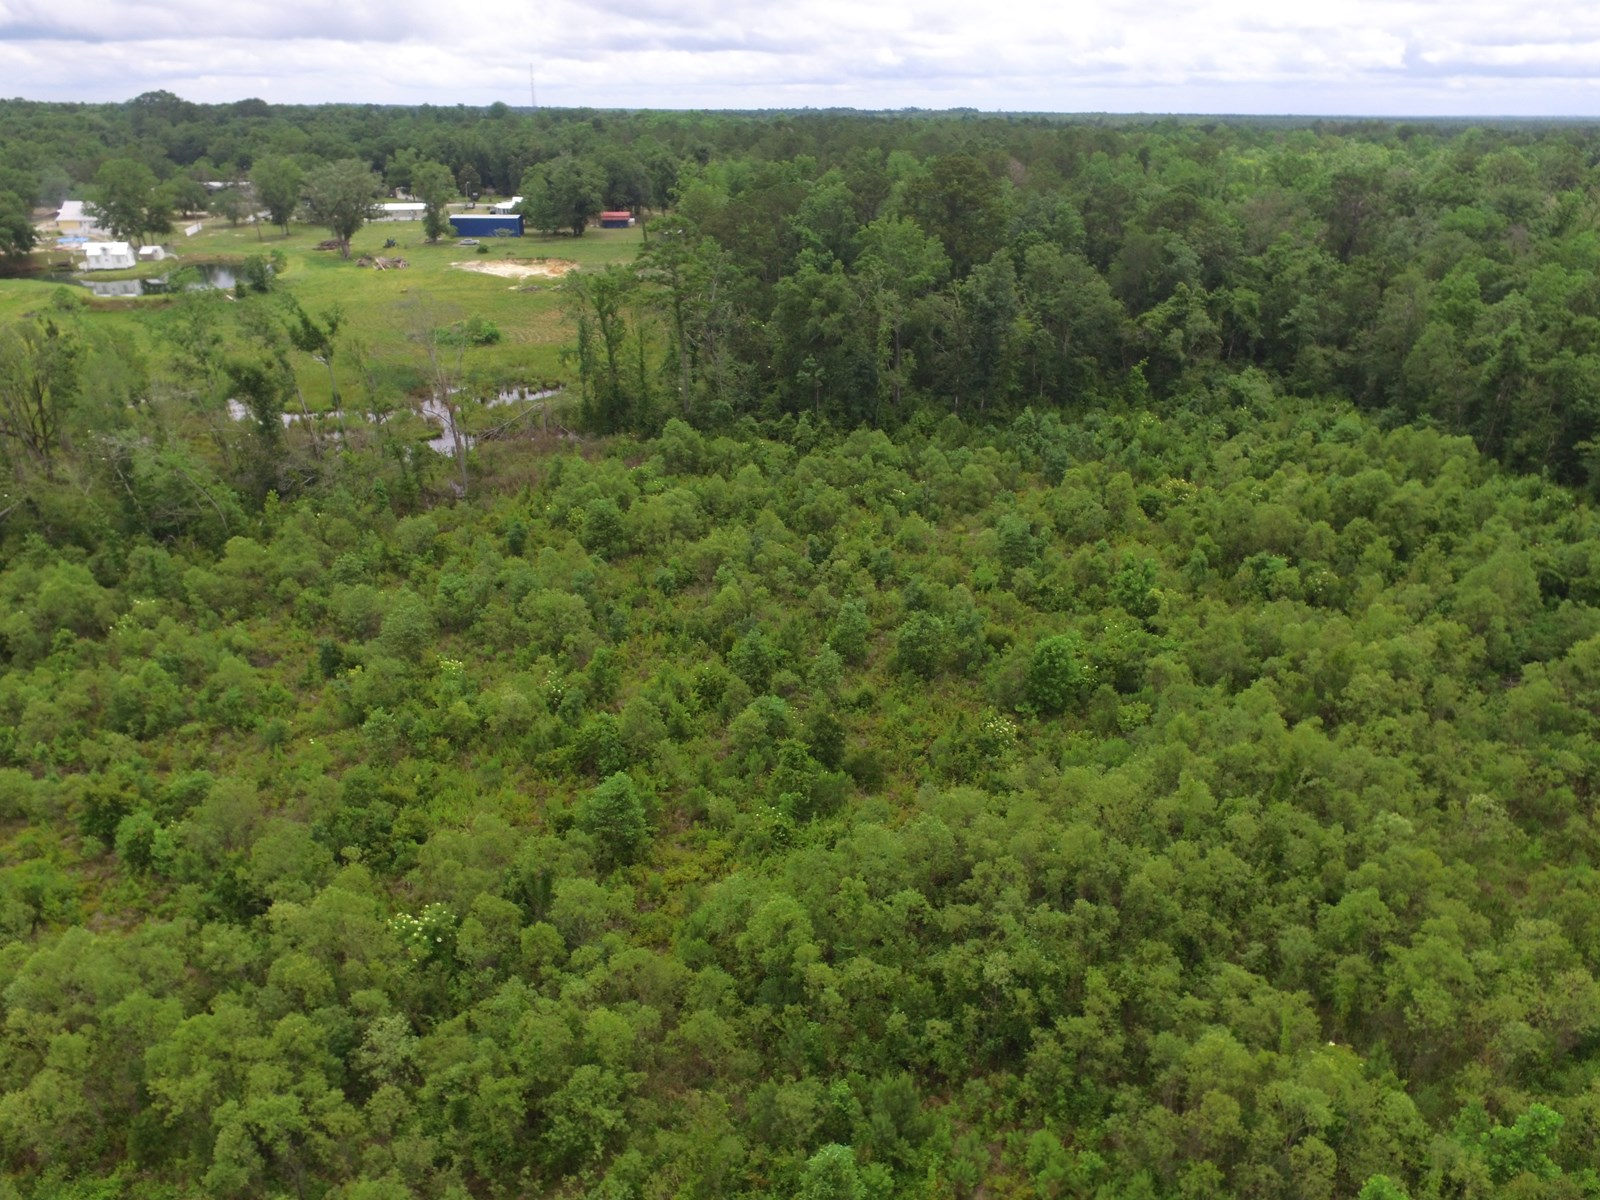 Land for sale in Hosford Florida